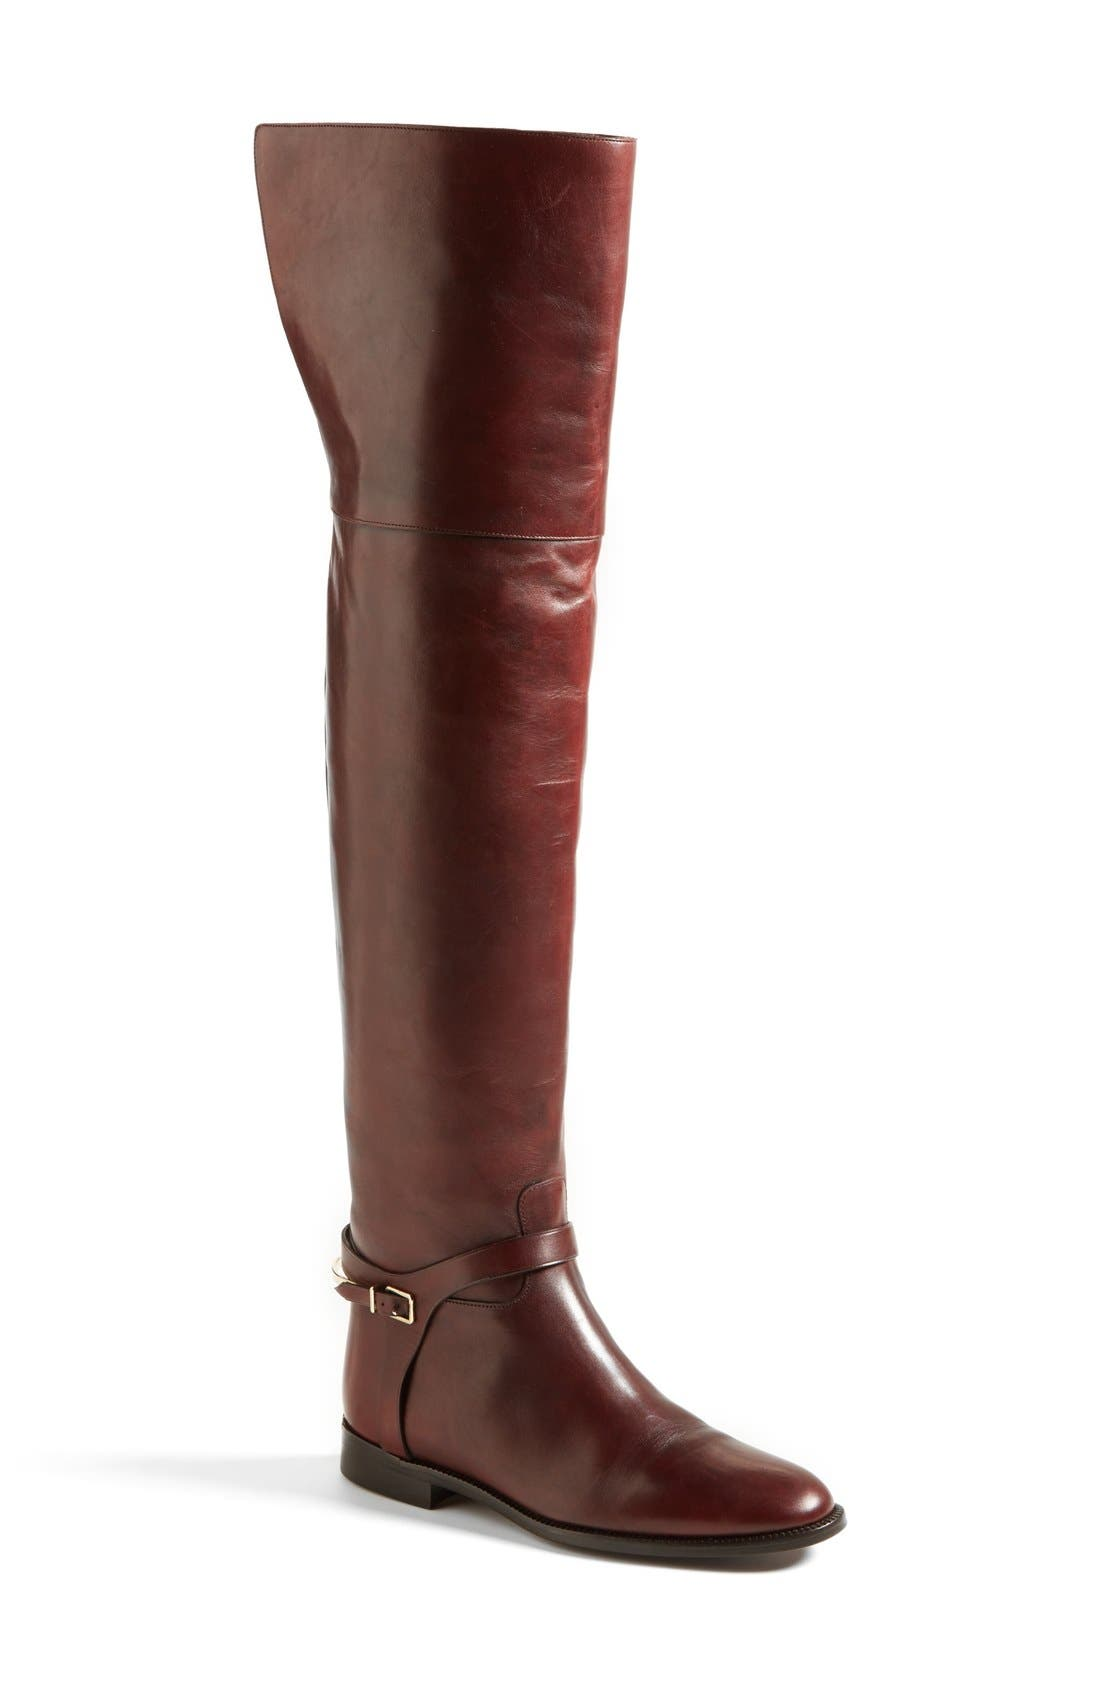 Main Image - Burberry 'Carmack' Over the Knee Boot (Women)